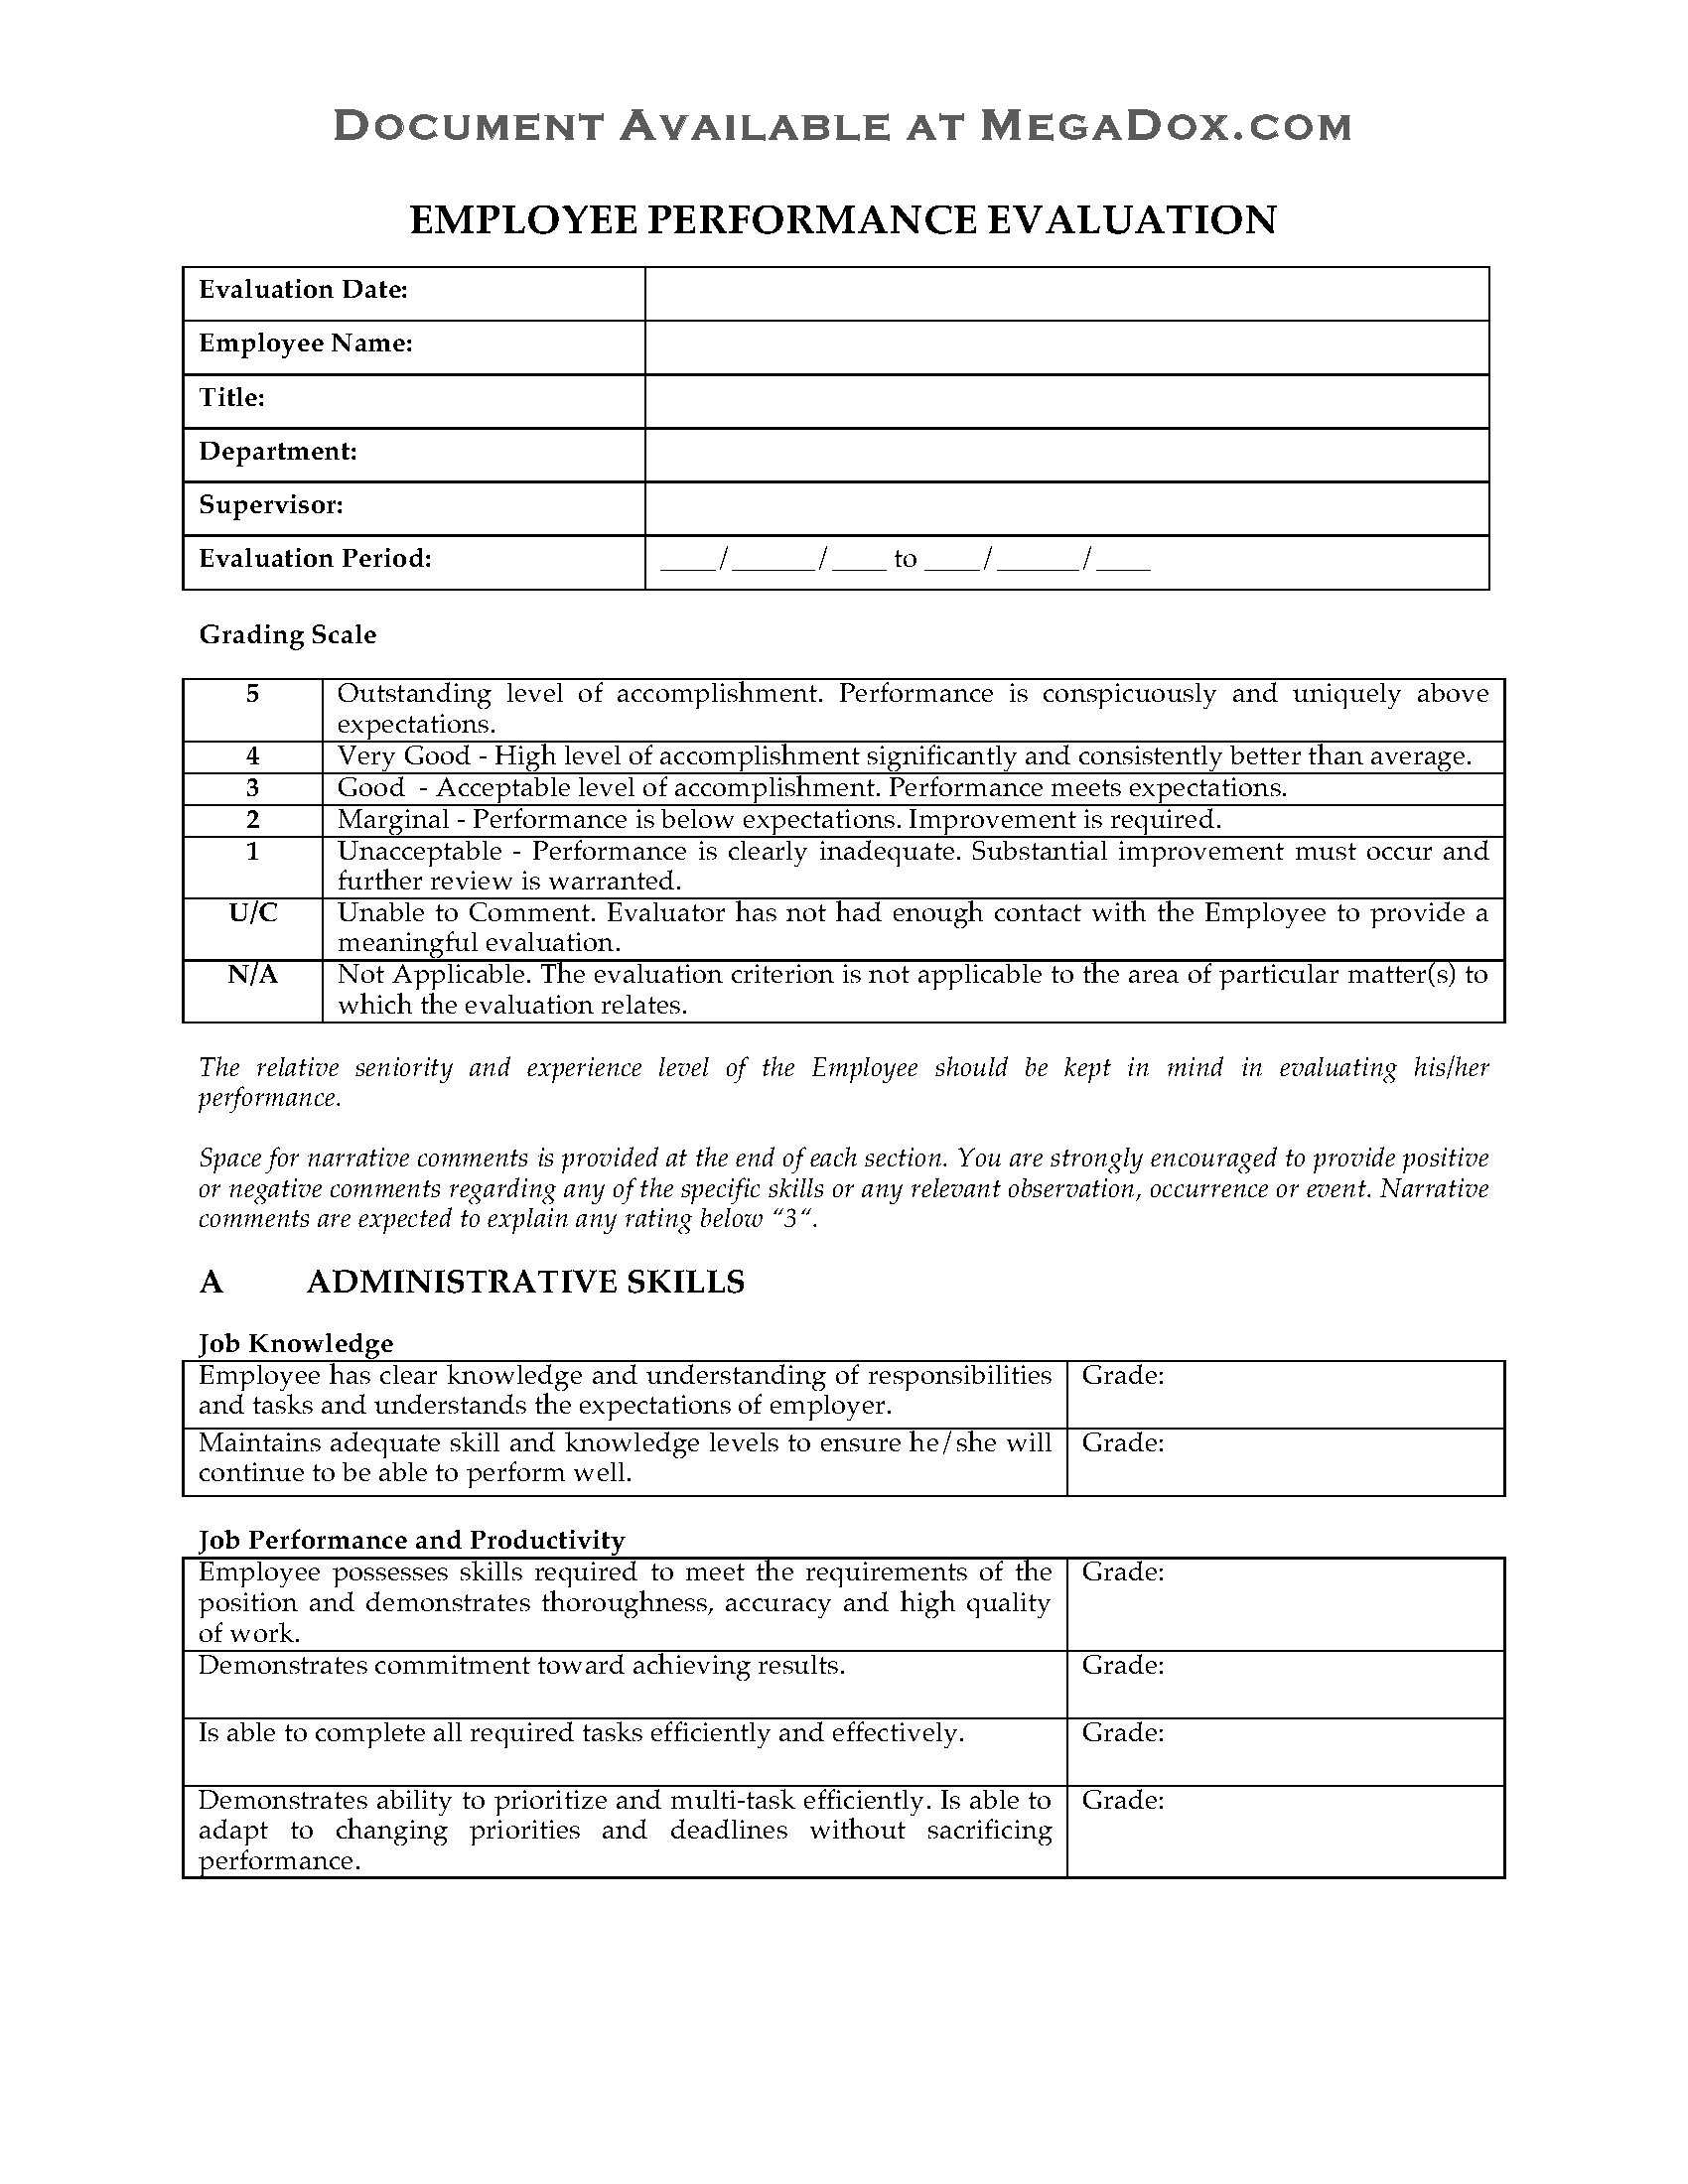 Employee Performance Review Evaluation Form Legal Forms And